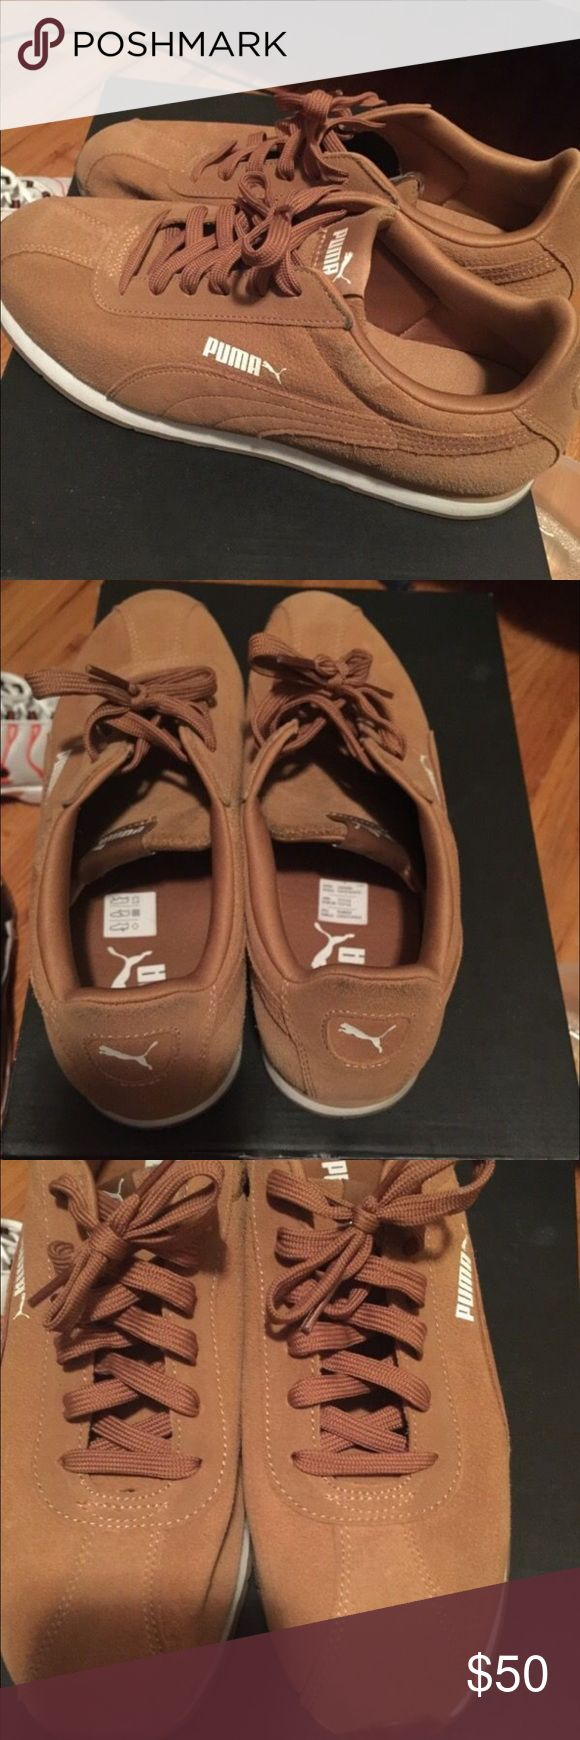 Suede pumas 9/10 condition worn 2x Puma Shoes Sneakers